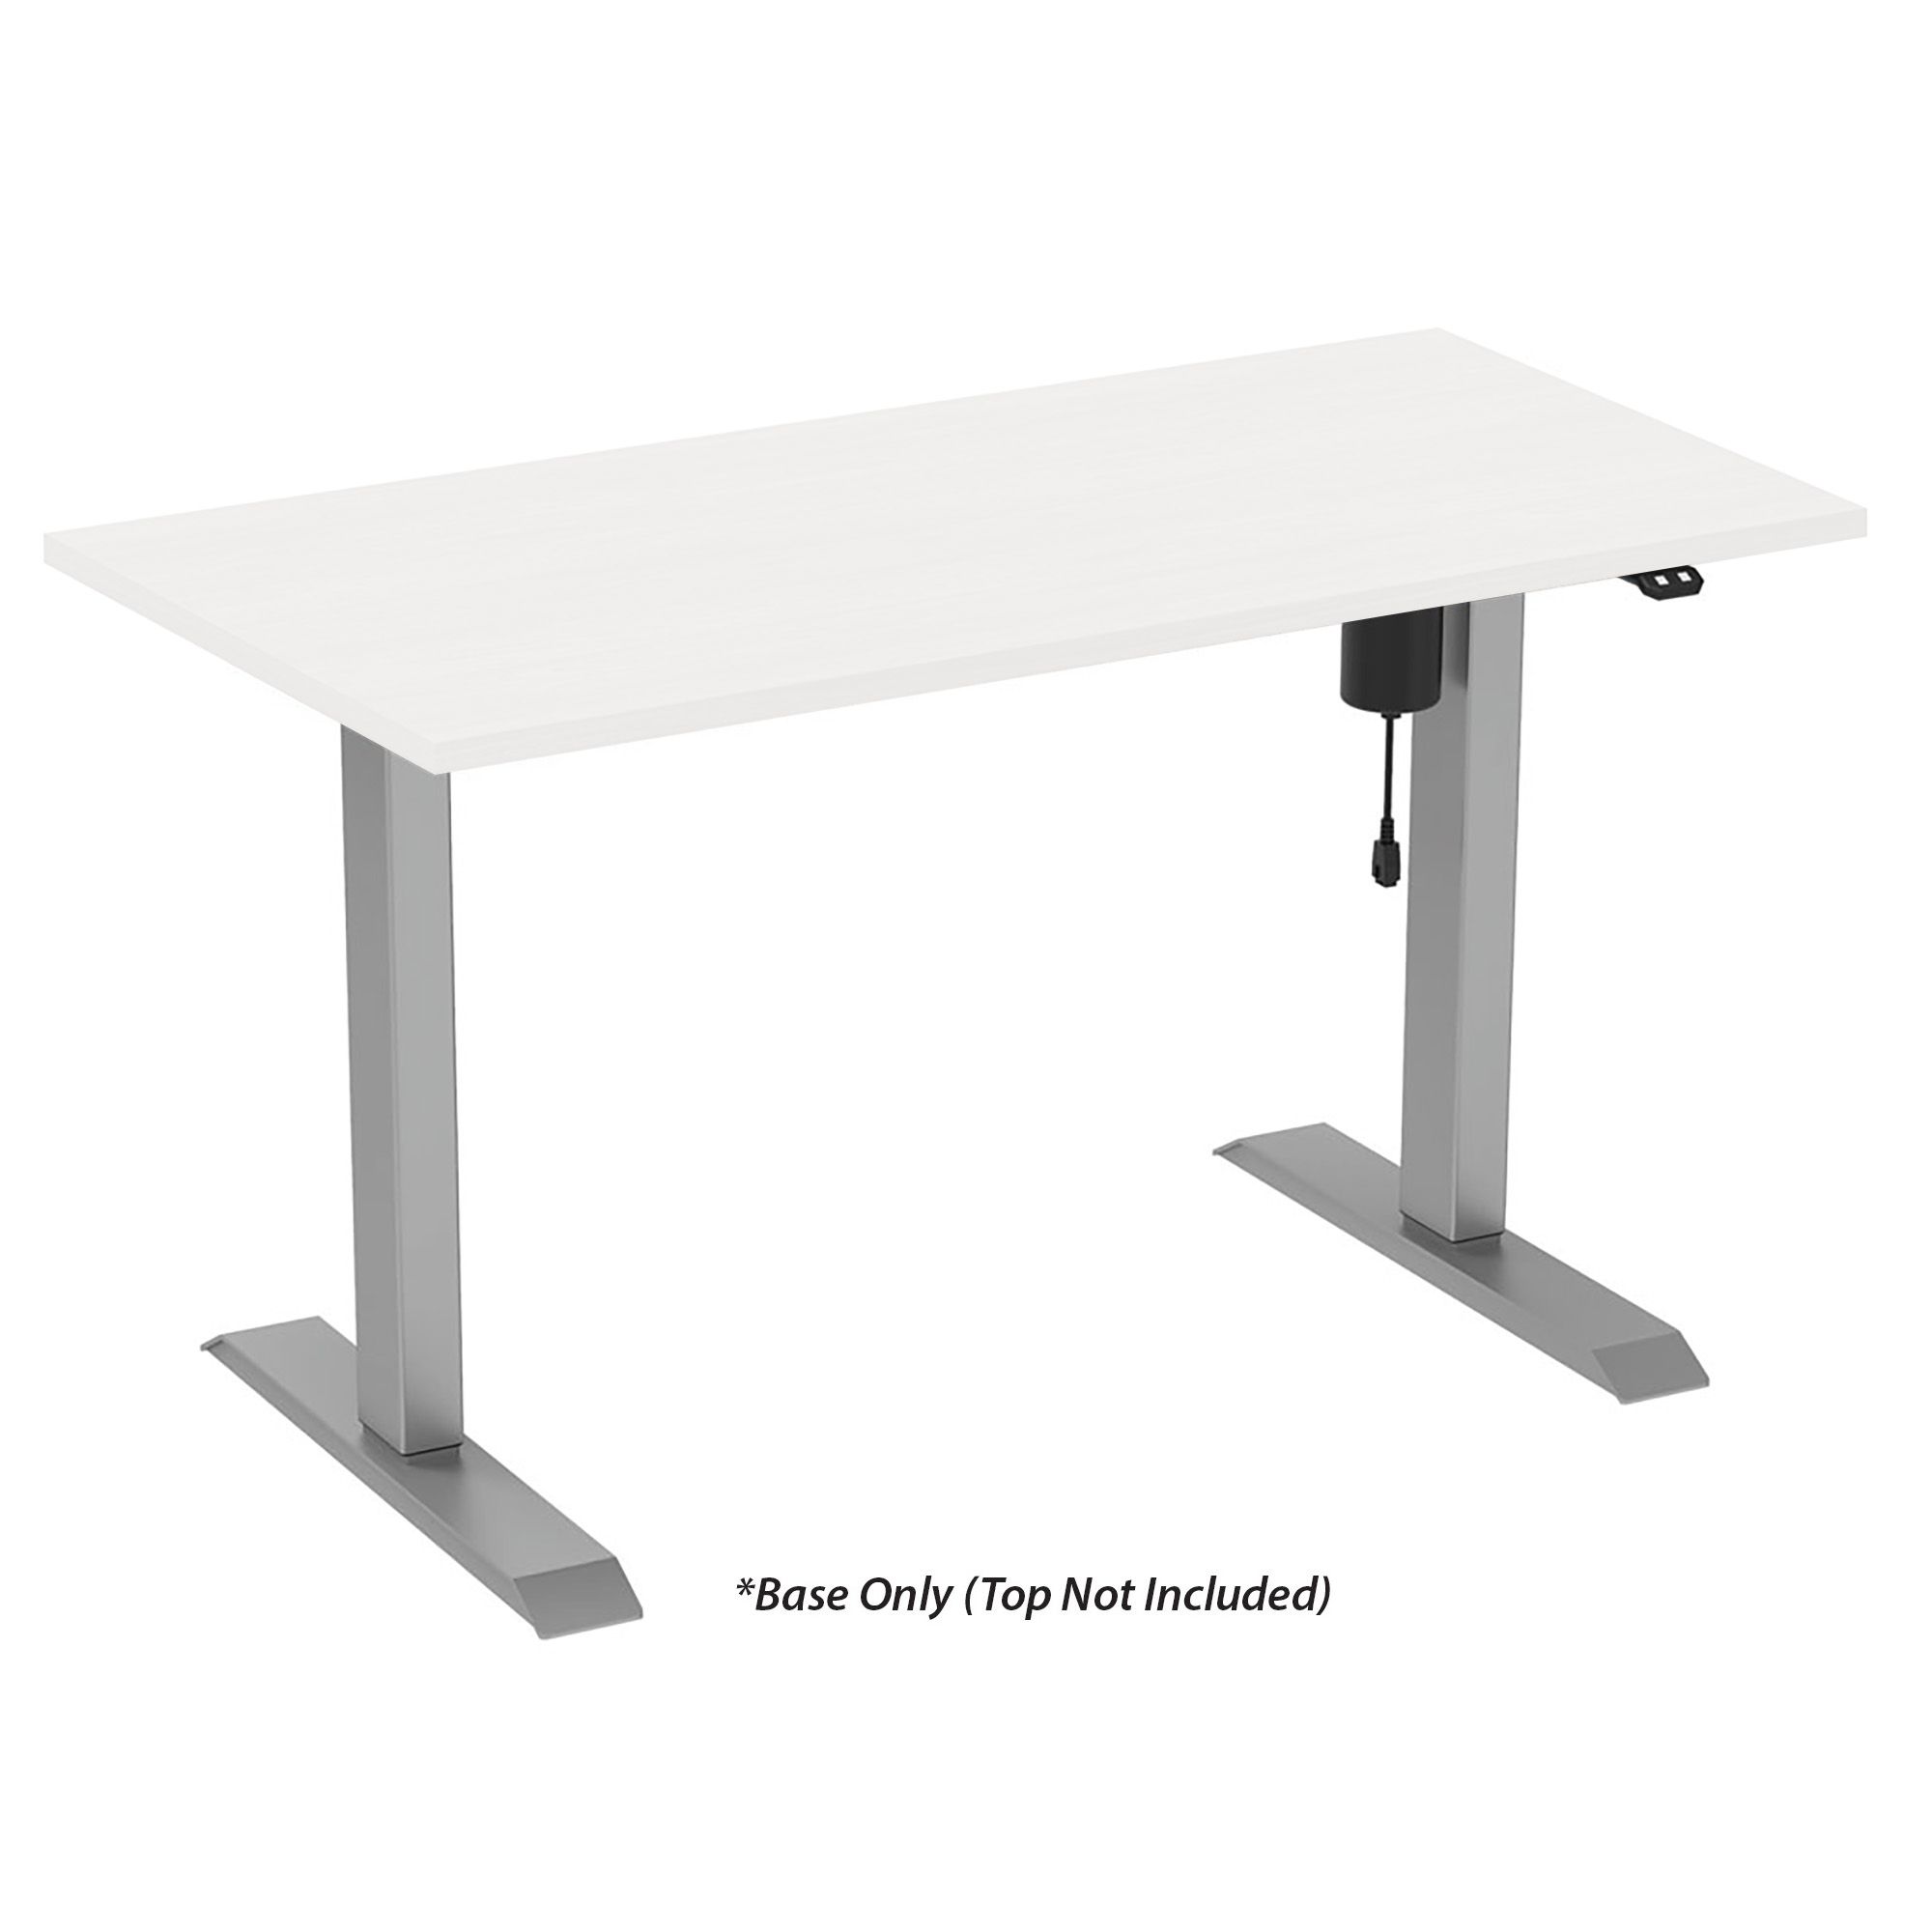 OfficeSource Any Space WFH Collection Height Adjustable Base – 2-Stage, Single Motor